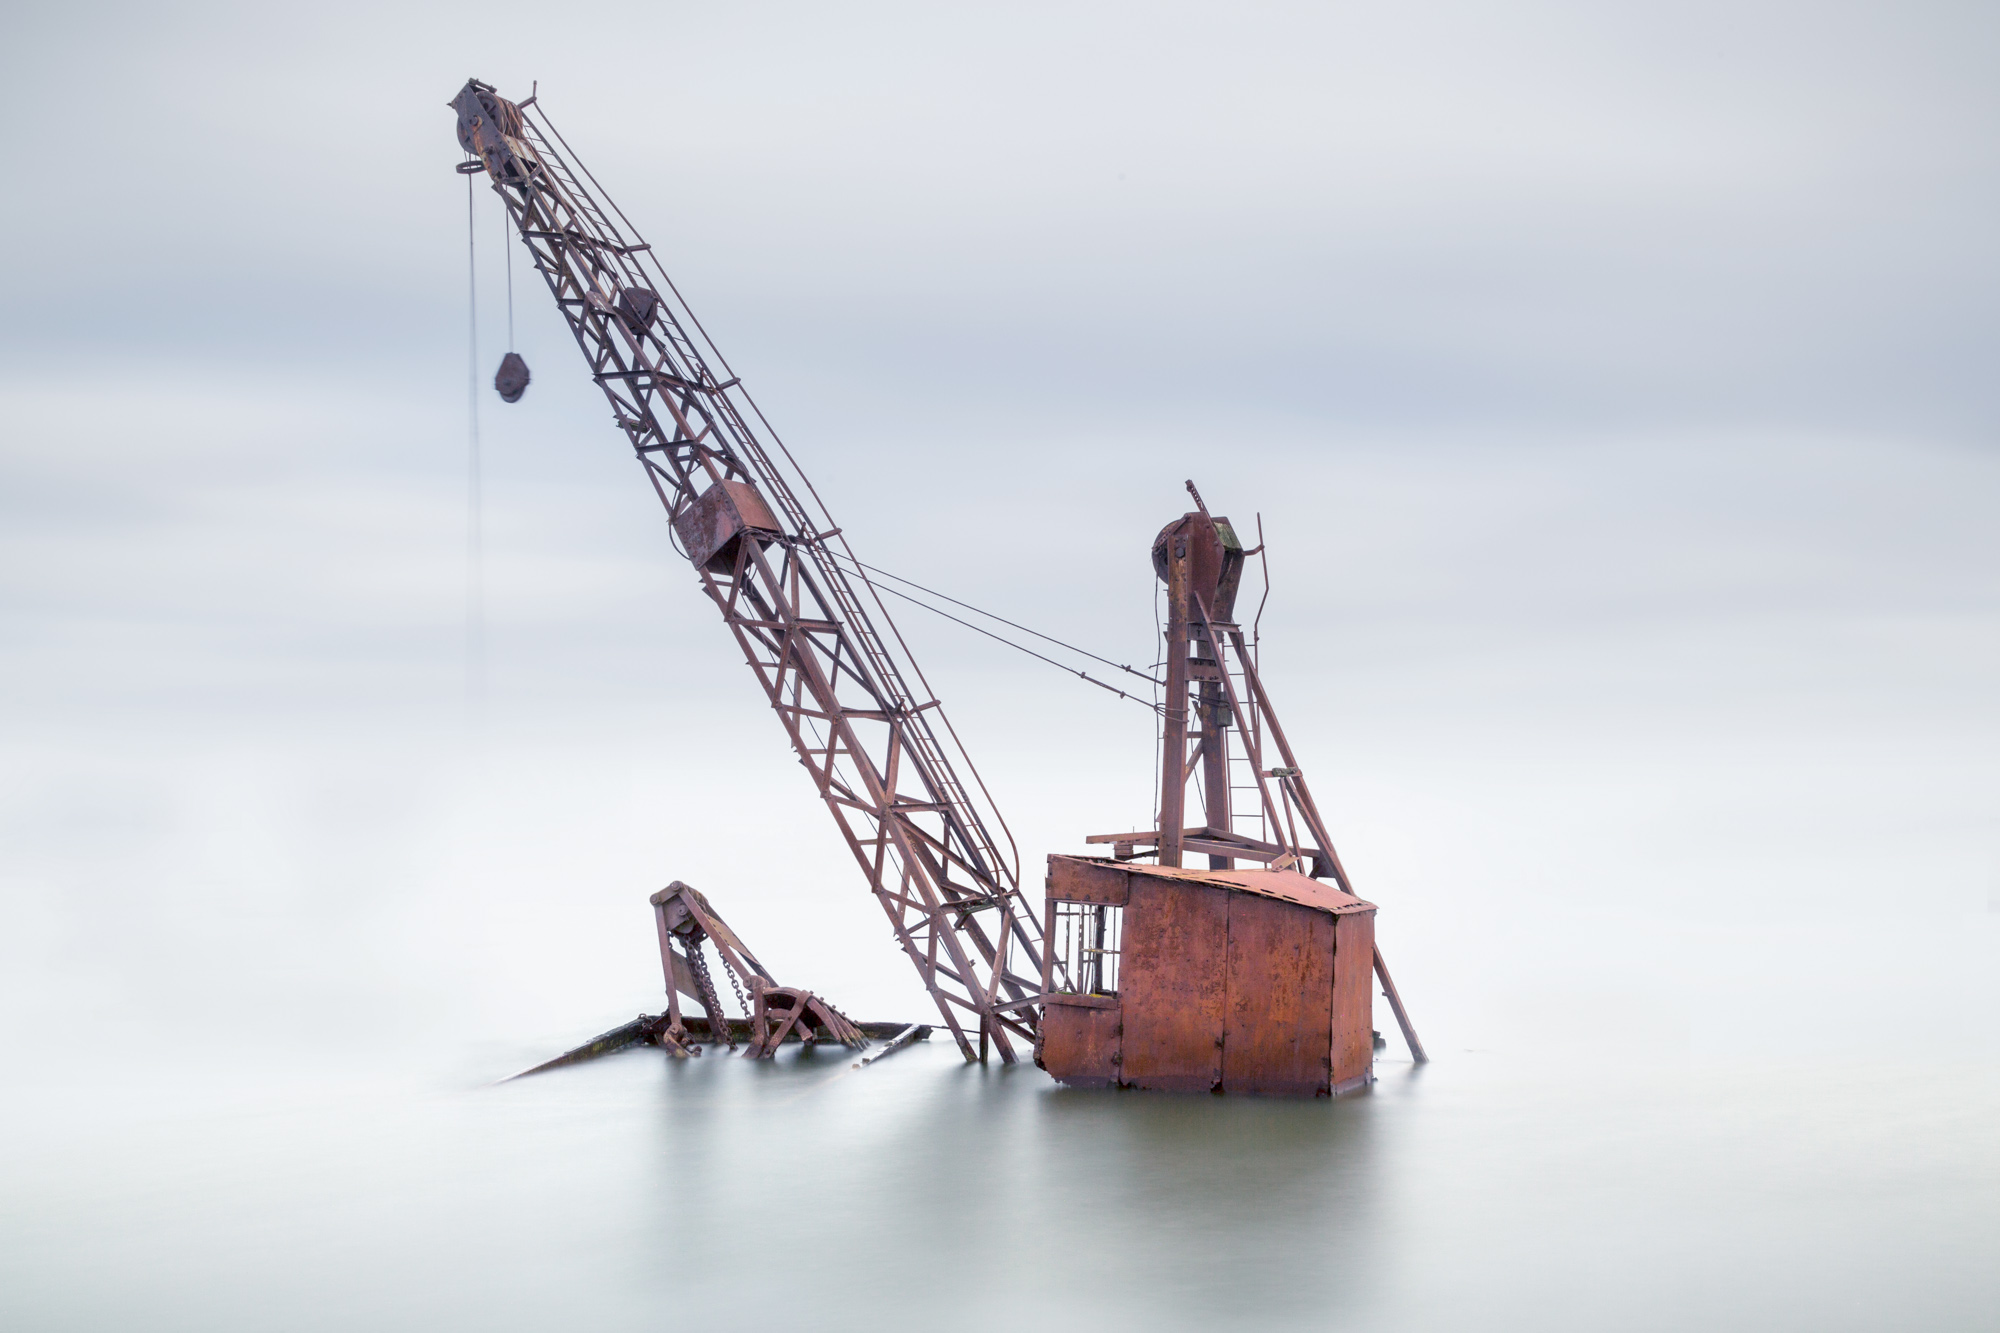 antonyz long exposure landscape photograph of a derelict crane in a flooded quarry in the UK